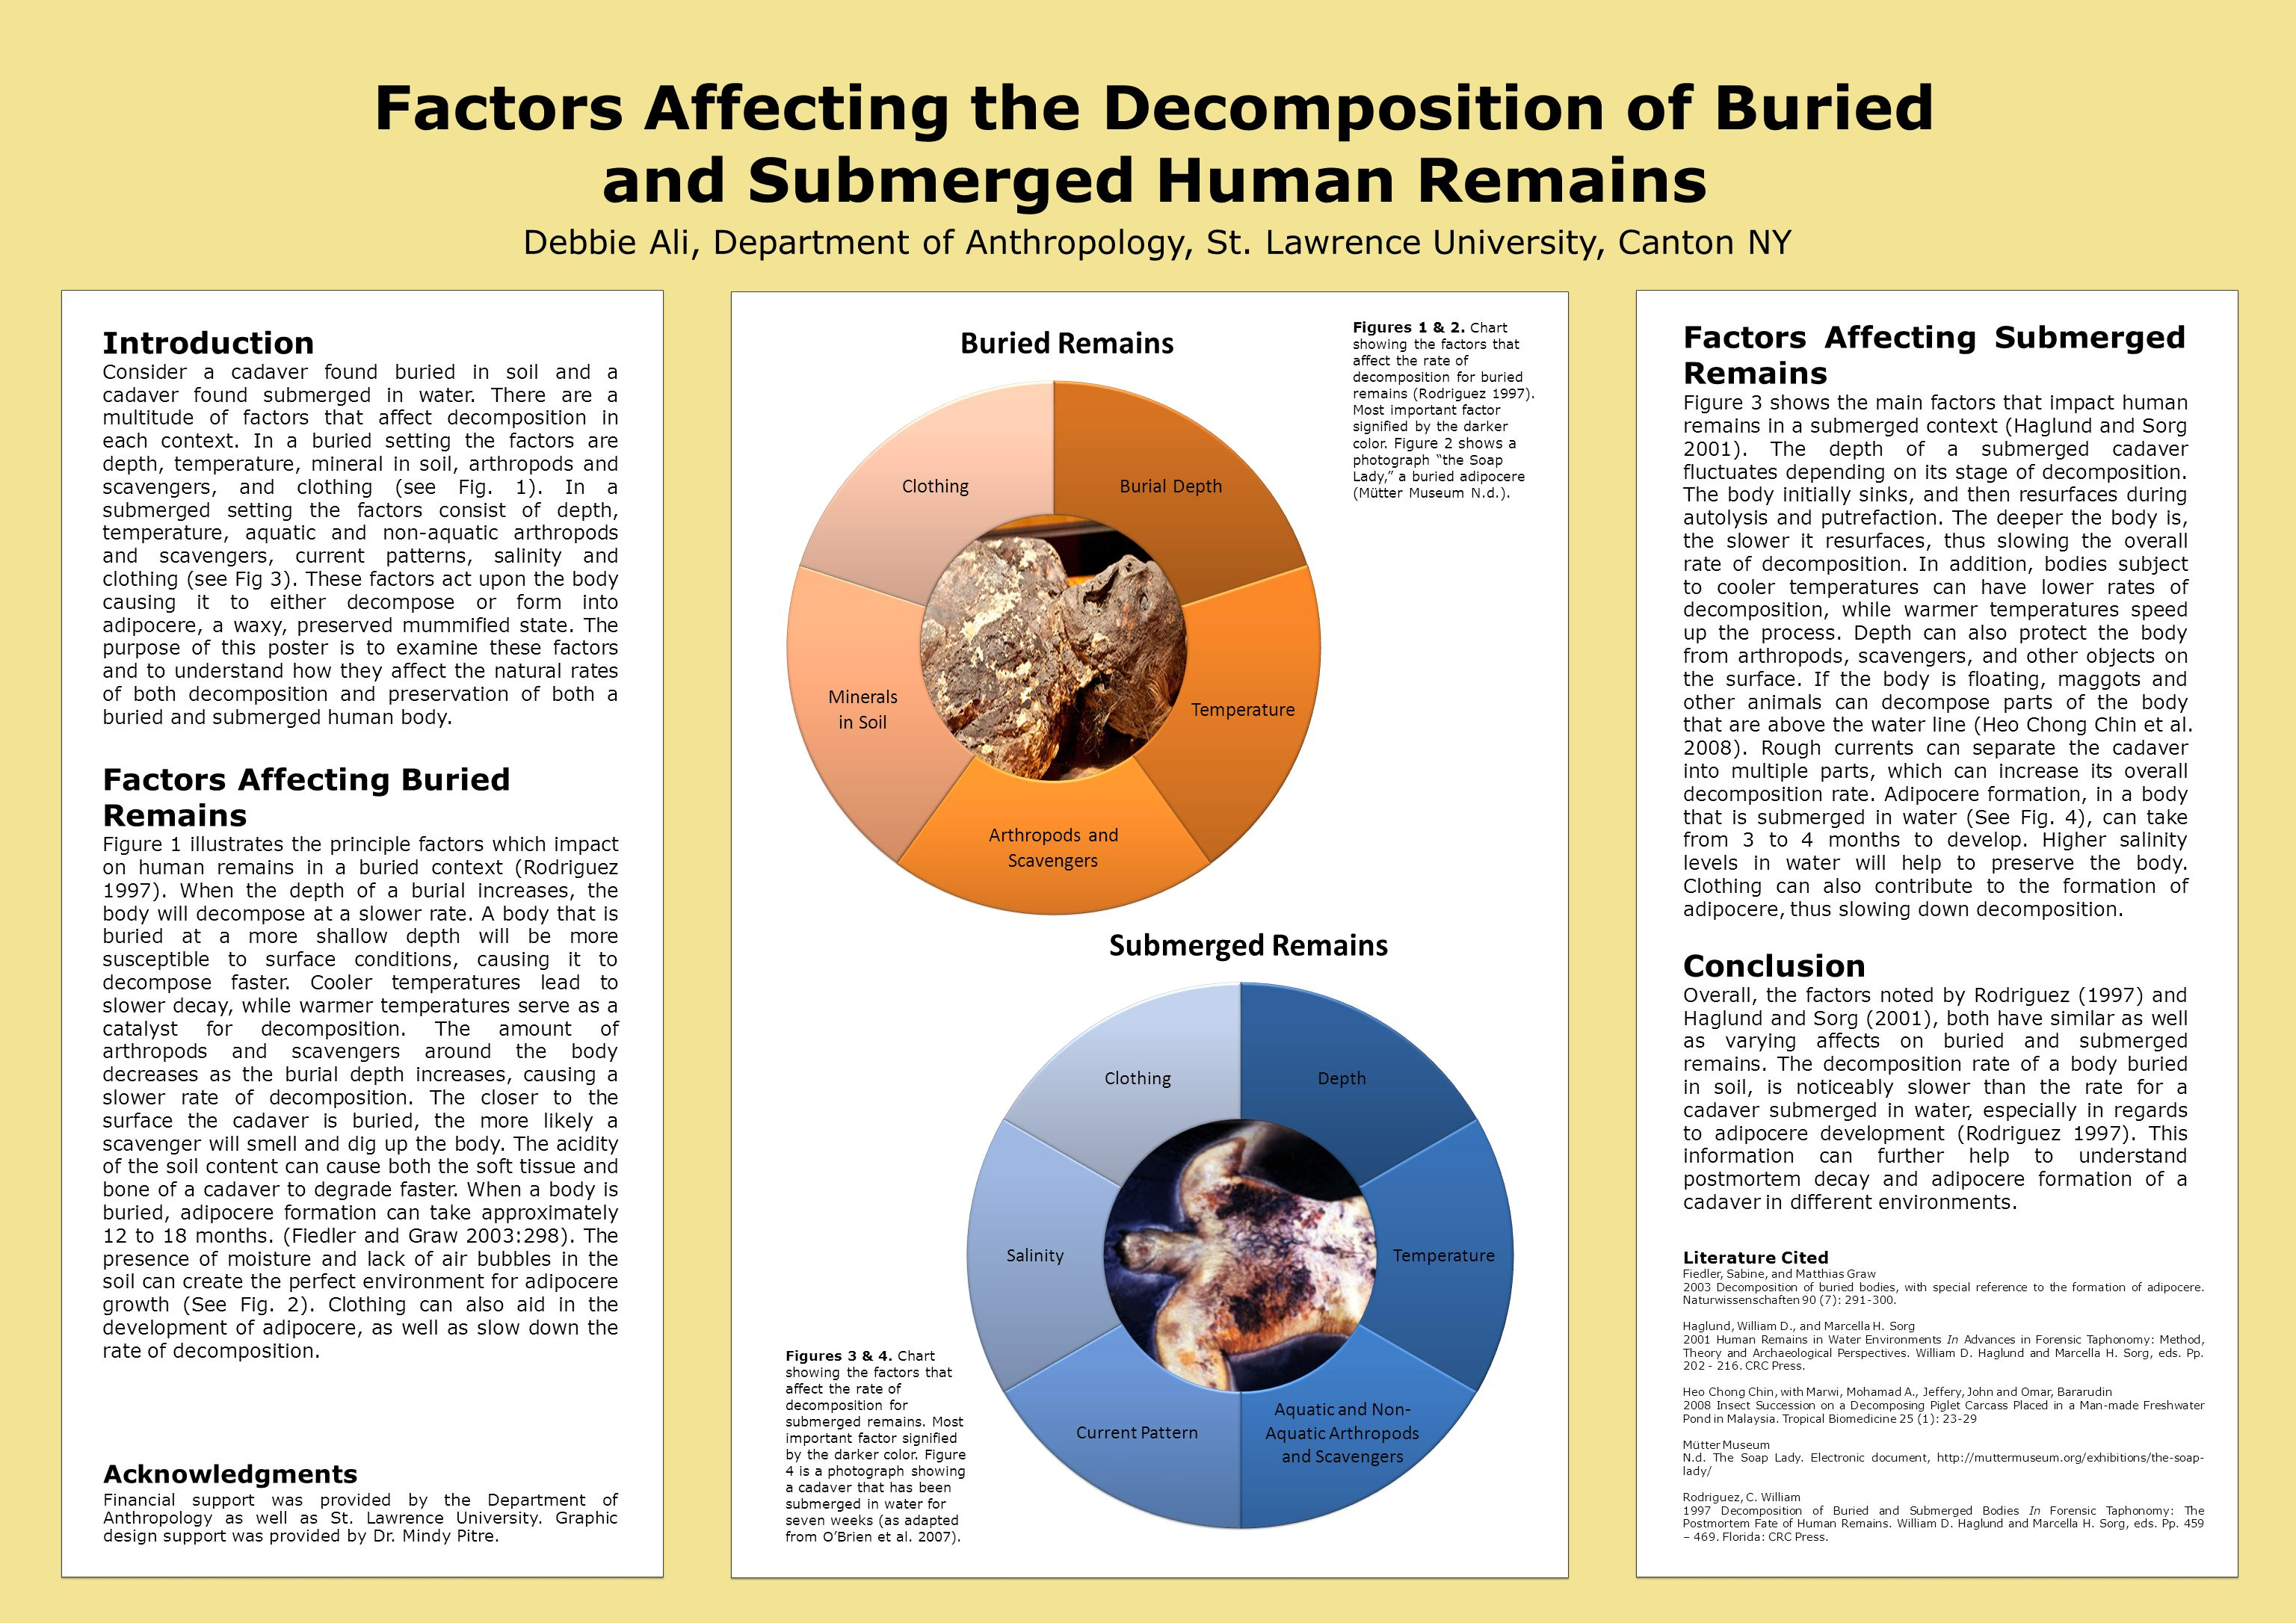 Factors Affecting the Decomposition of Buried and Submerged Human Remains Debbie Ali, Department of Anthropology, St. Lawrence University, Canton NY L